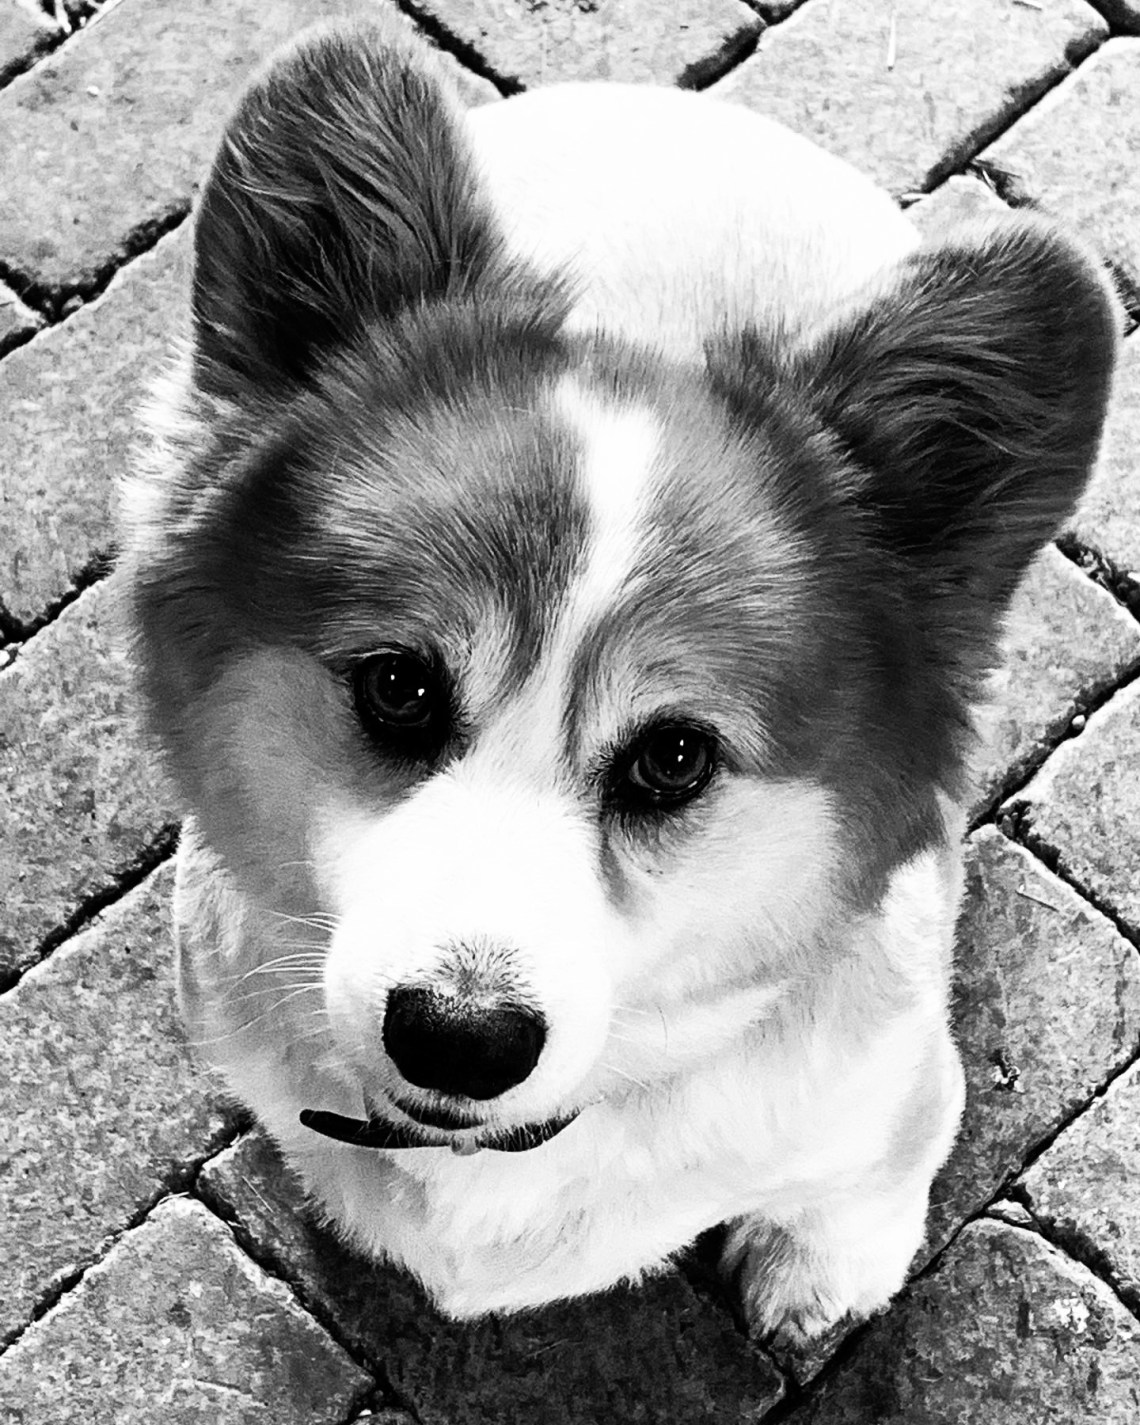 The Zookeepers Companion, corgi